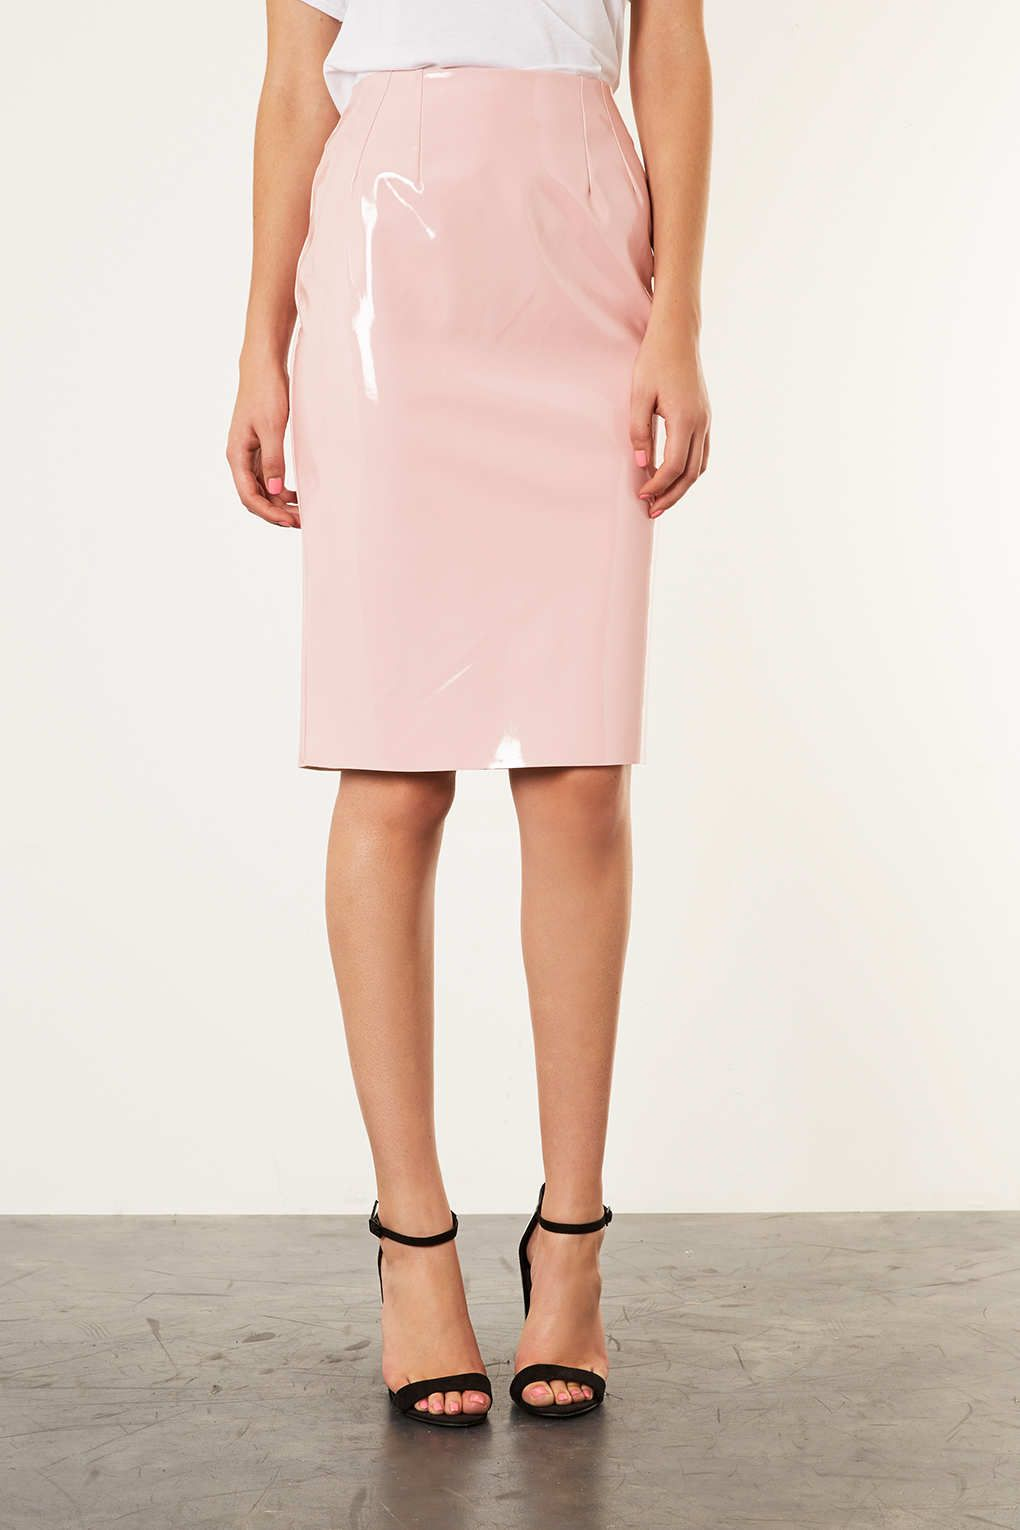 Pink PVC pencil skirt aka everything. | Pink | Pinterest | Pencil ...